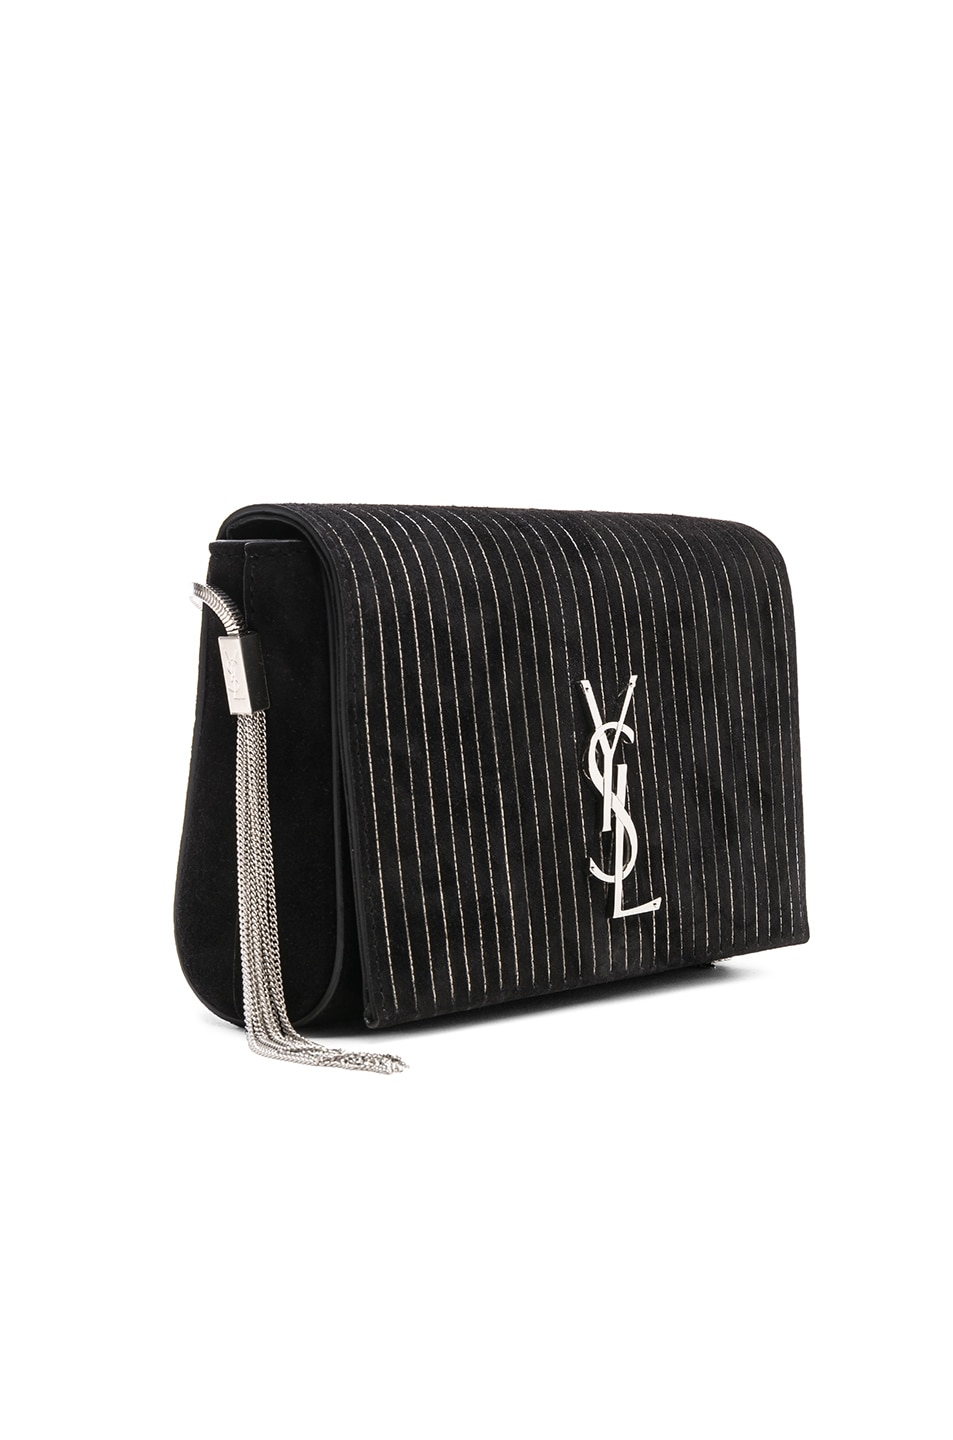 Image 4 of Saint Laurent Small Chain Studded Suede Kate Chain Bag in Black & Ruthenium